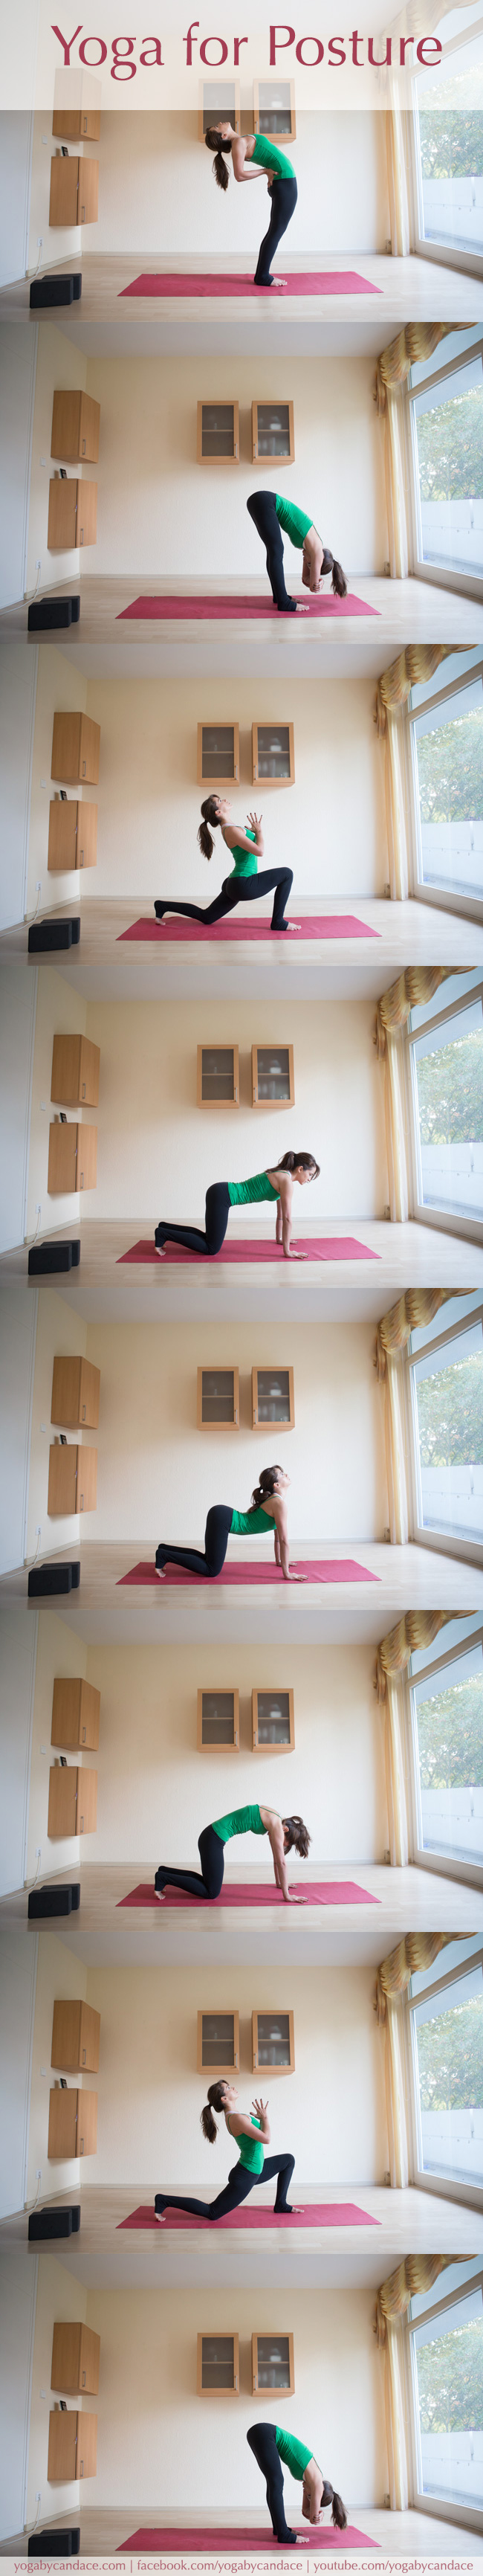 Pin it! A yoga sequence for better posture.